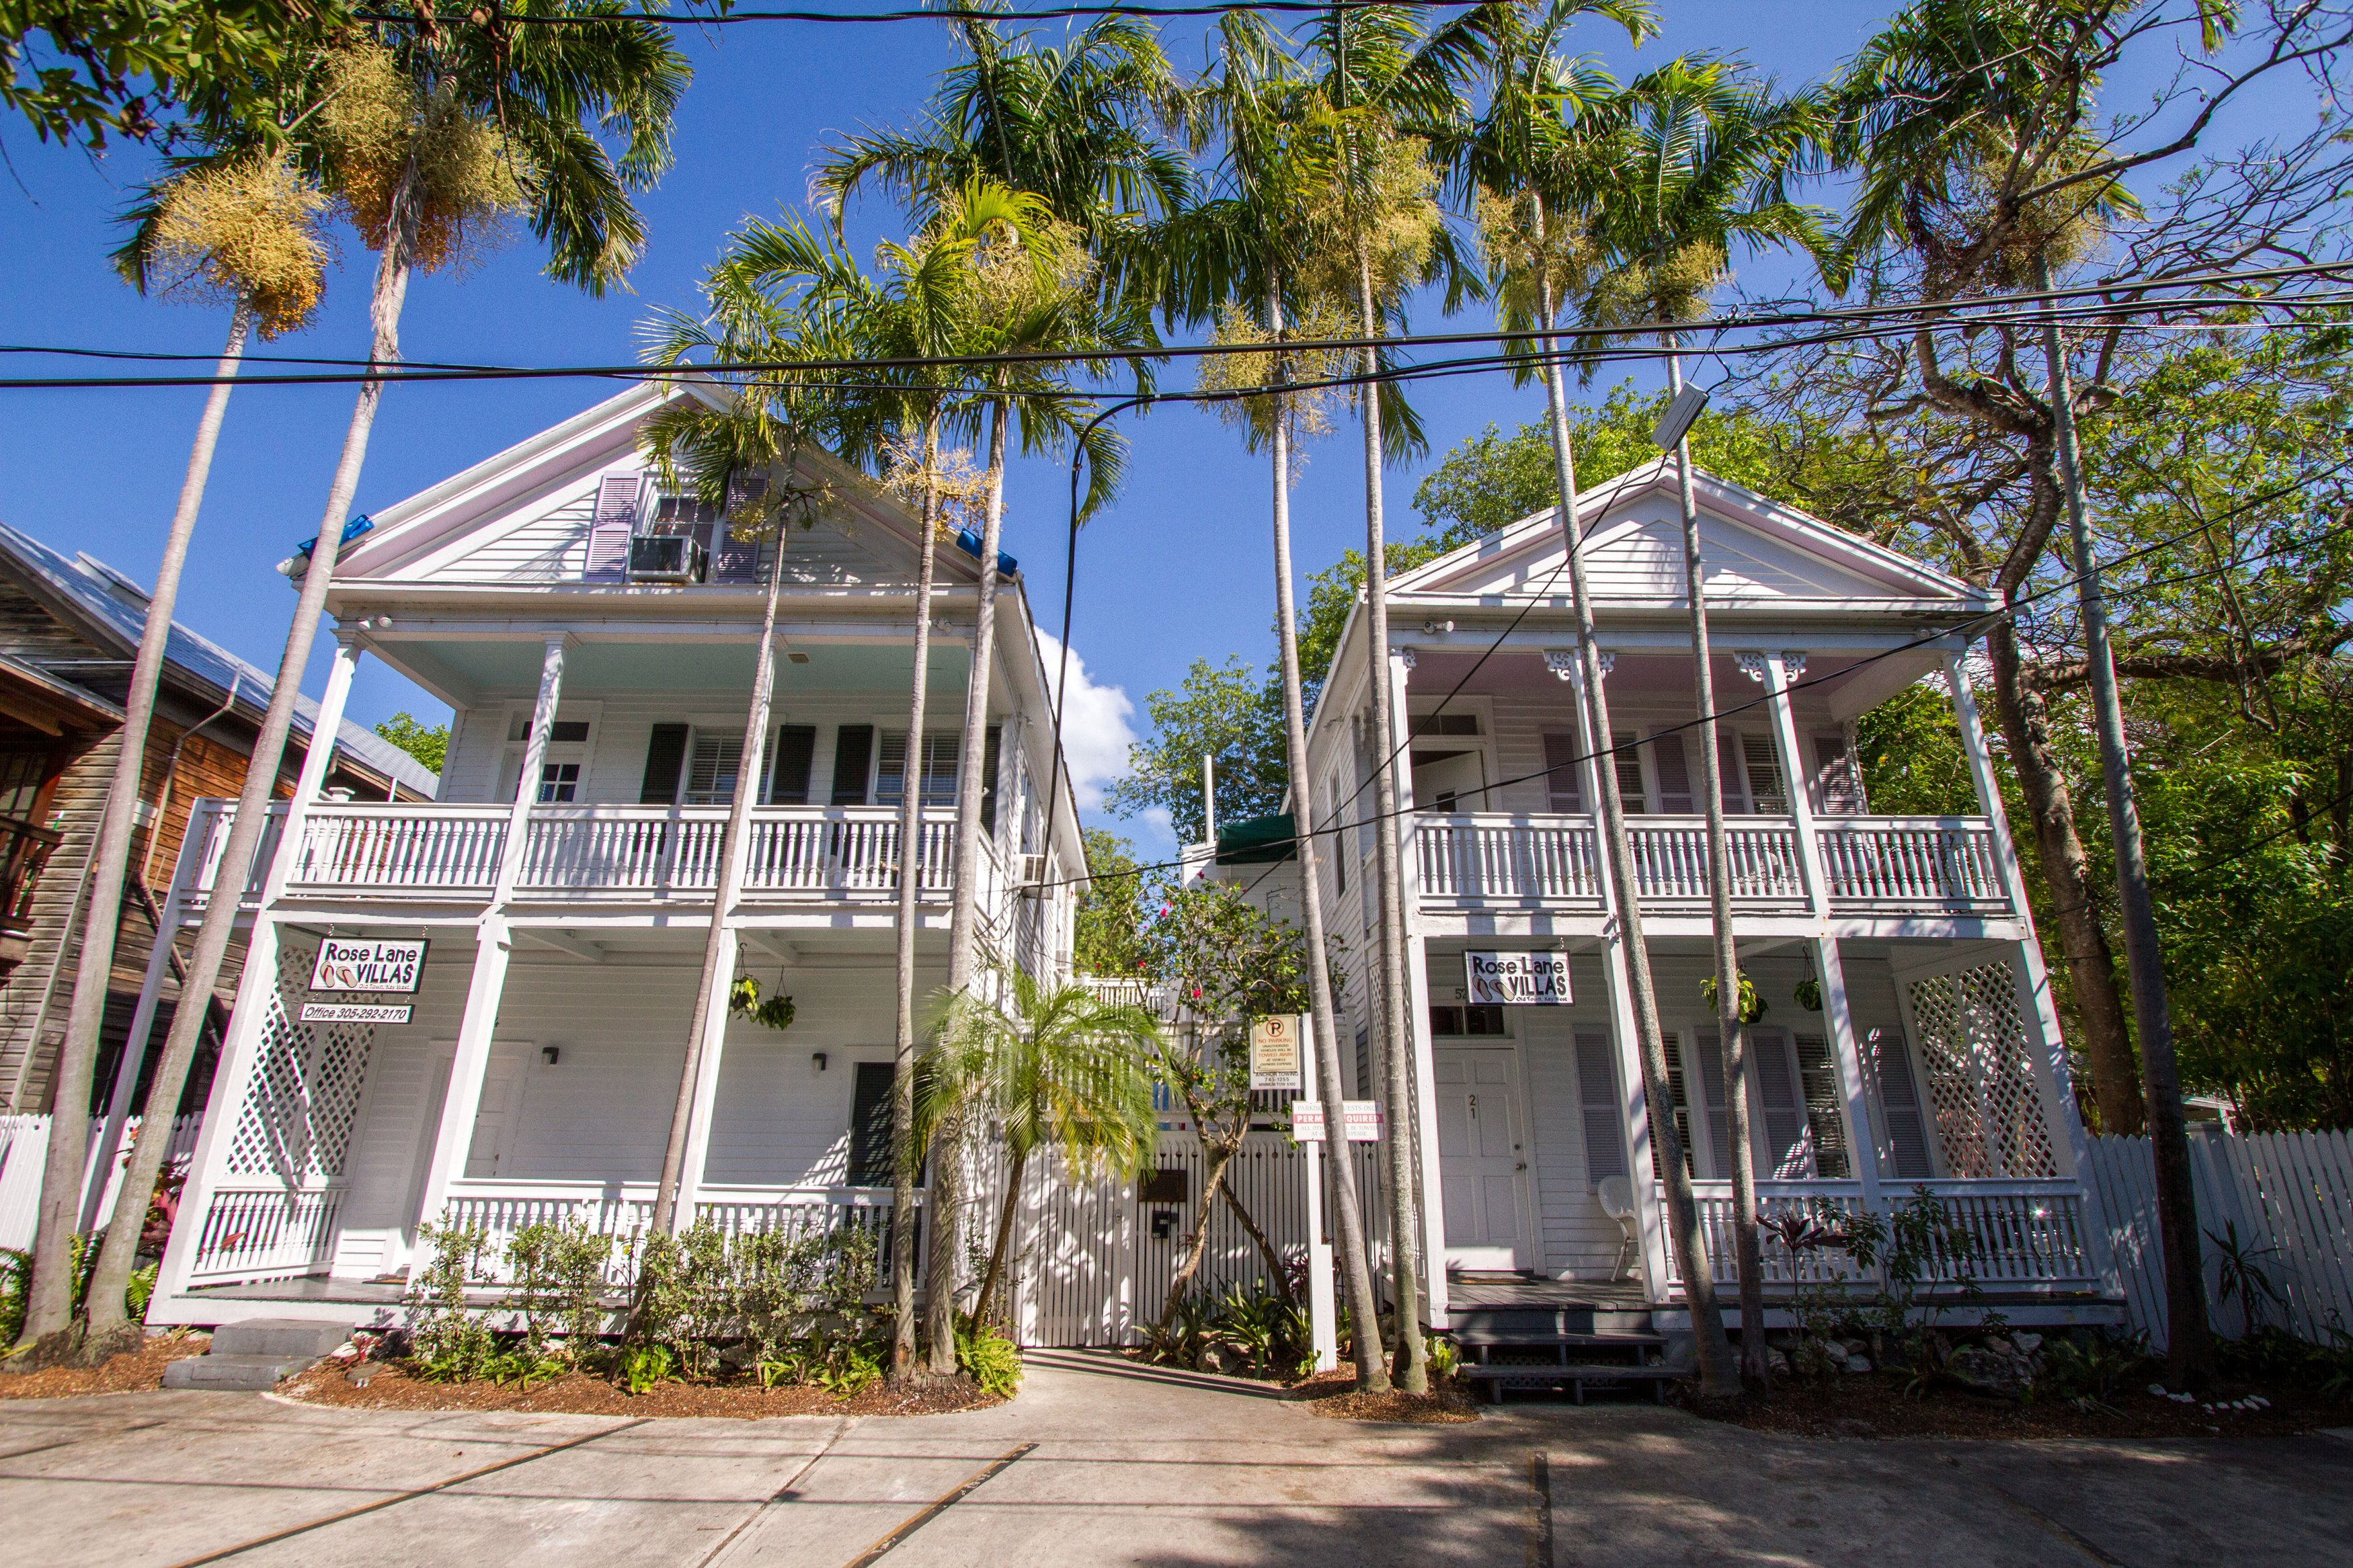 Rose Lane Villas is located in the heart of Old Town, Key